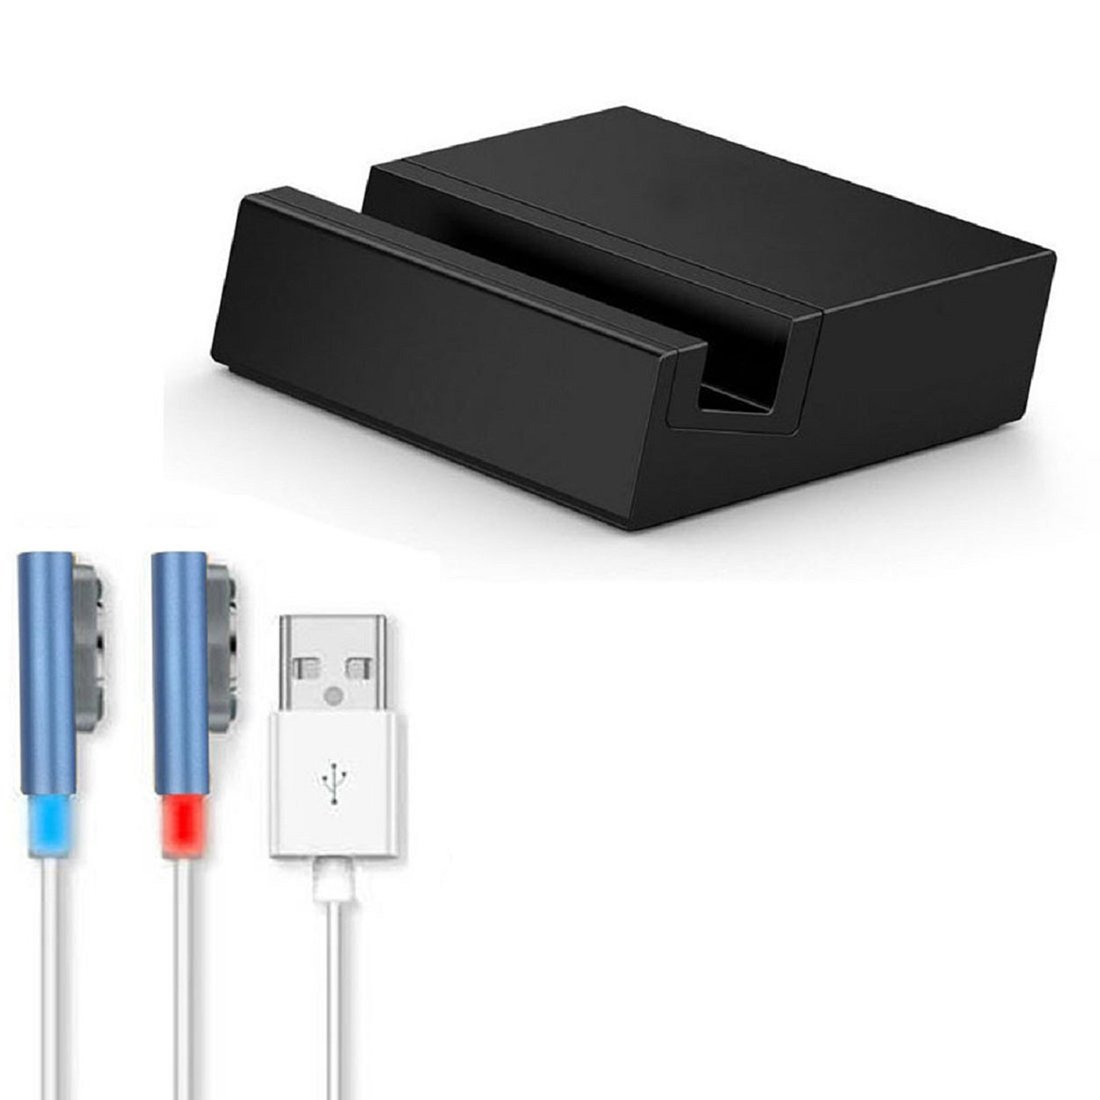 Amazon.com: SODIAL Magnetic USB LED Cable + Charger Dock for ...